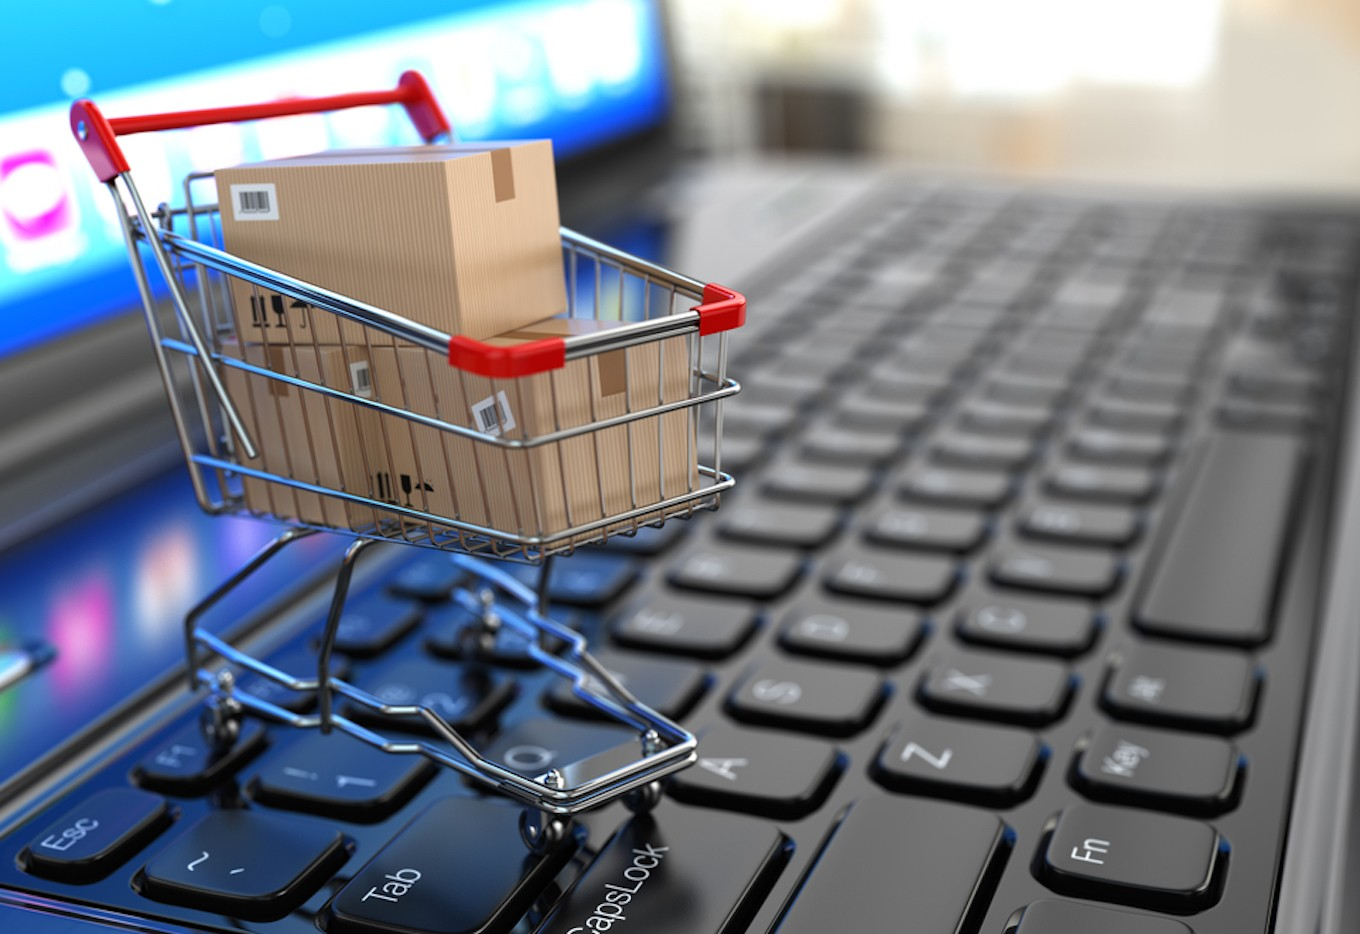 Next economic package about e-commerce, digital economy: top officials